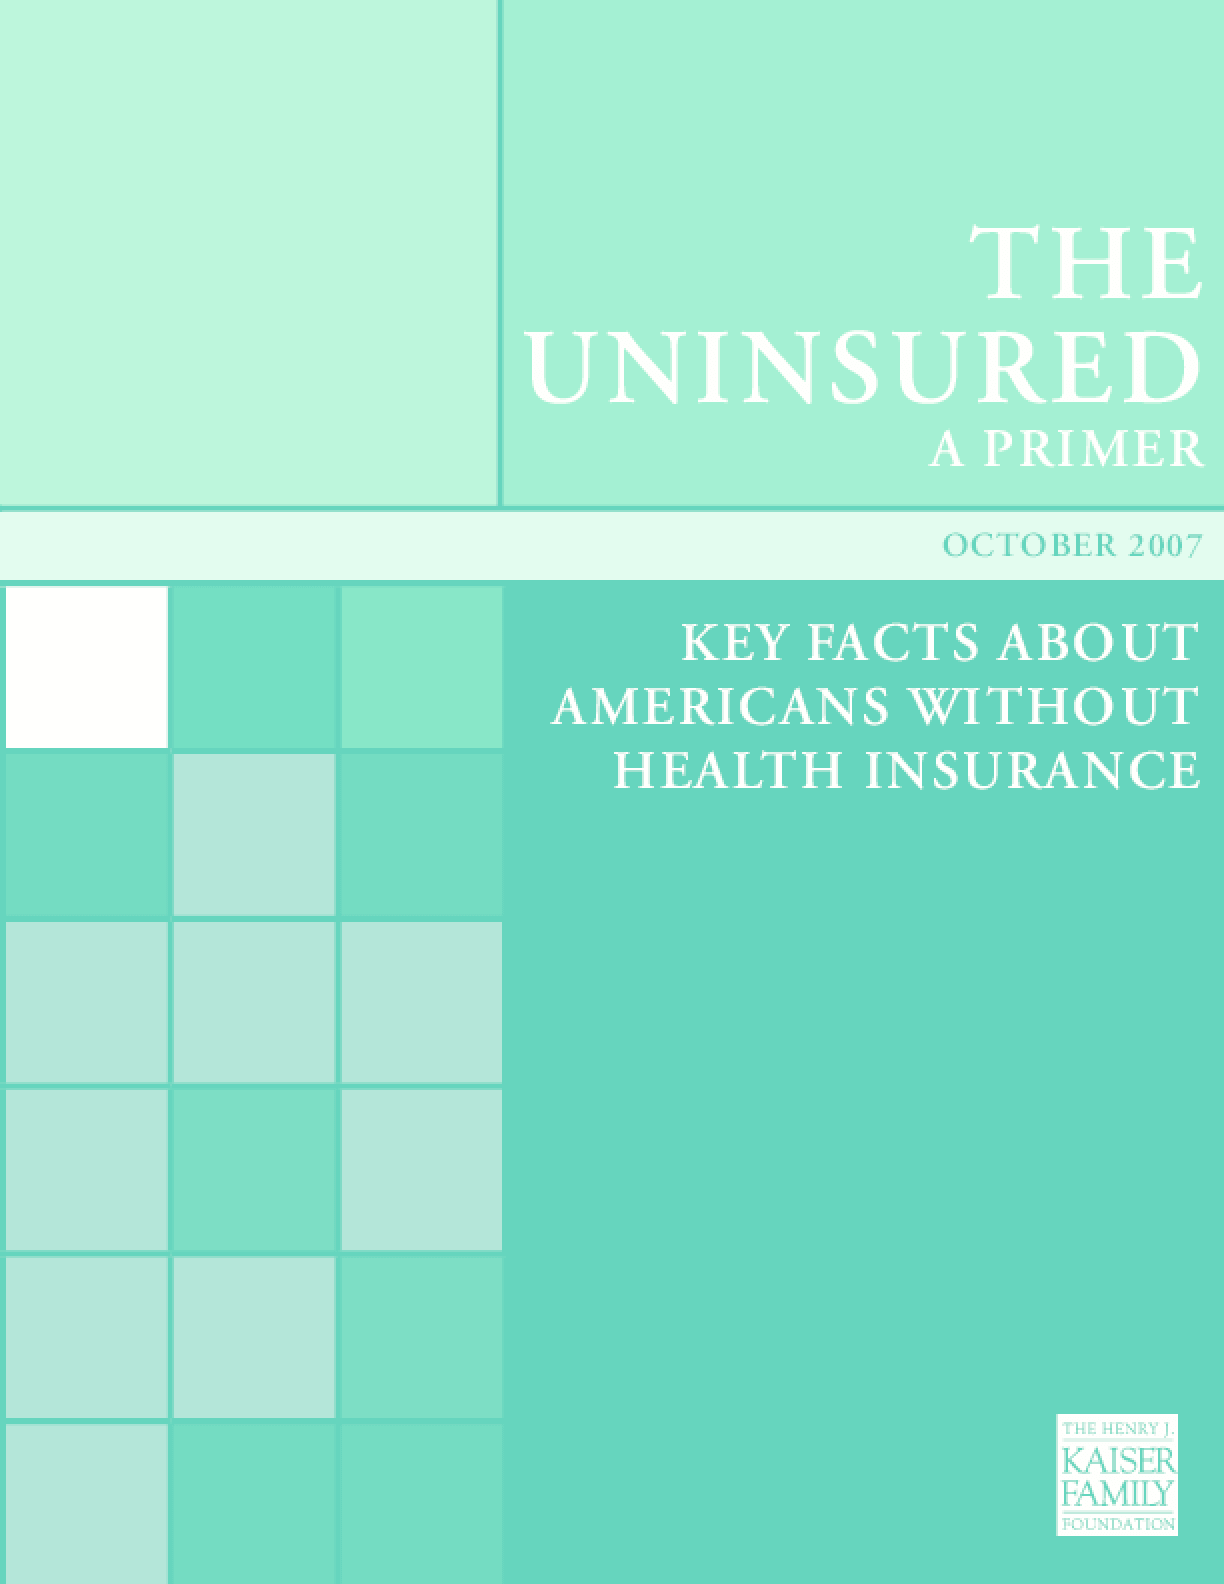 The Uninsured: A Primer: Key Facts About Americans Without Health Insurance